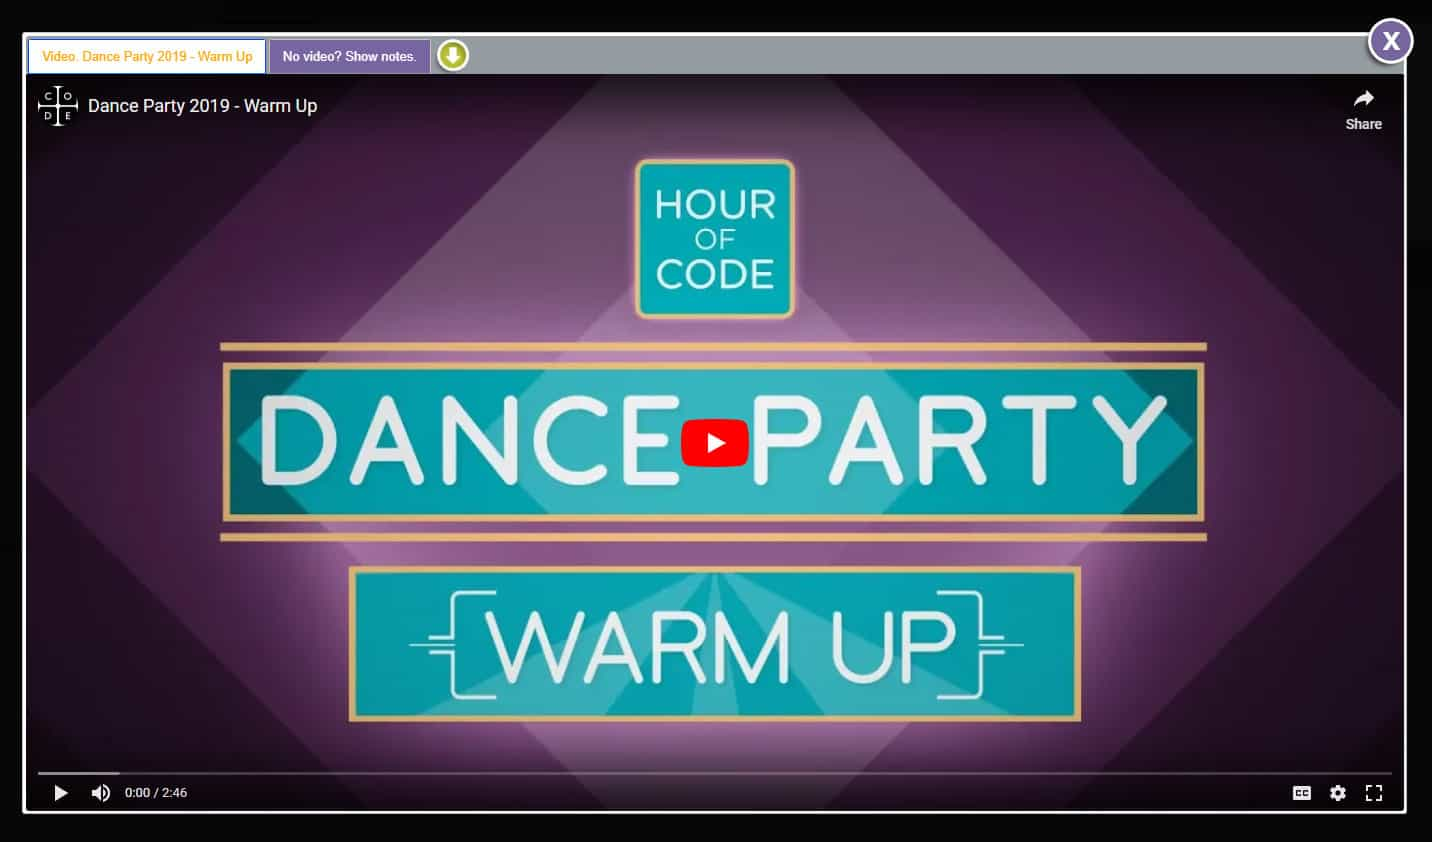 Hour of Code Dance Party